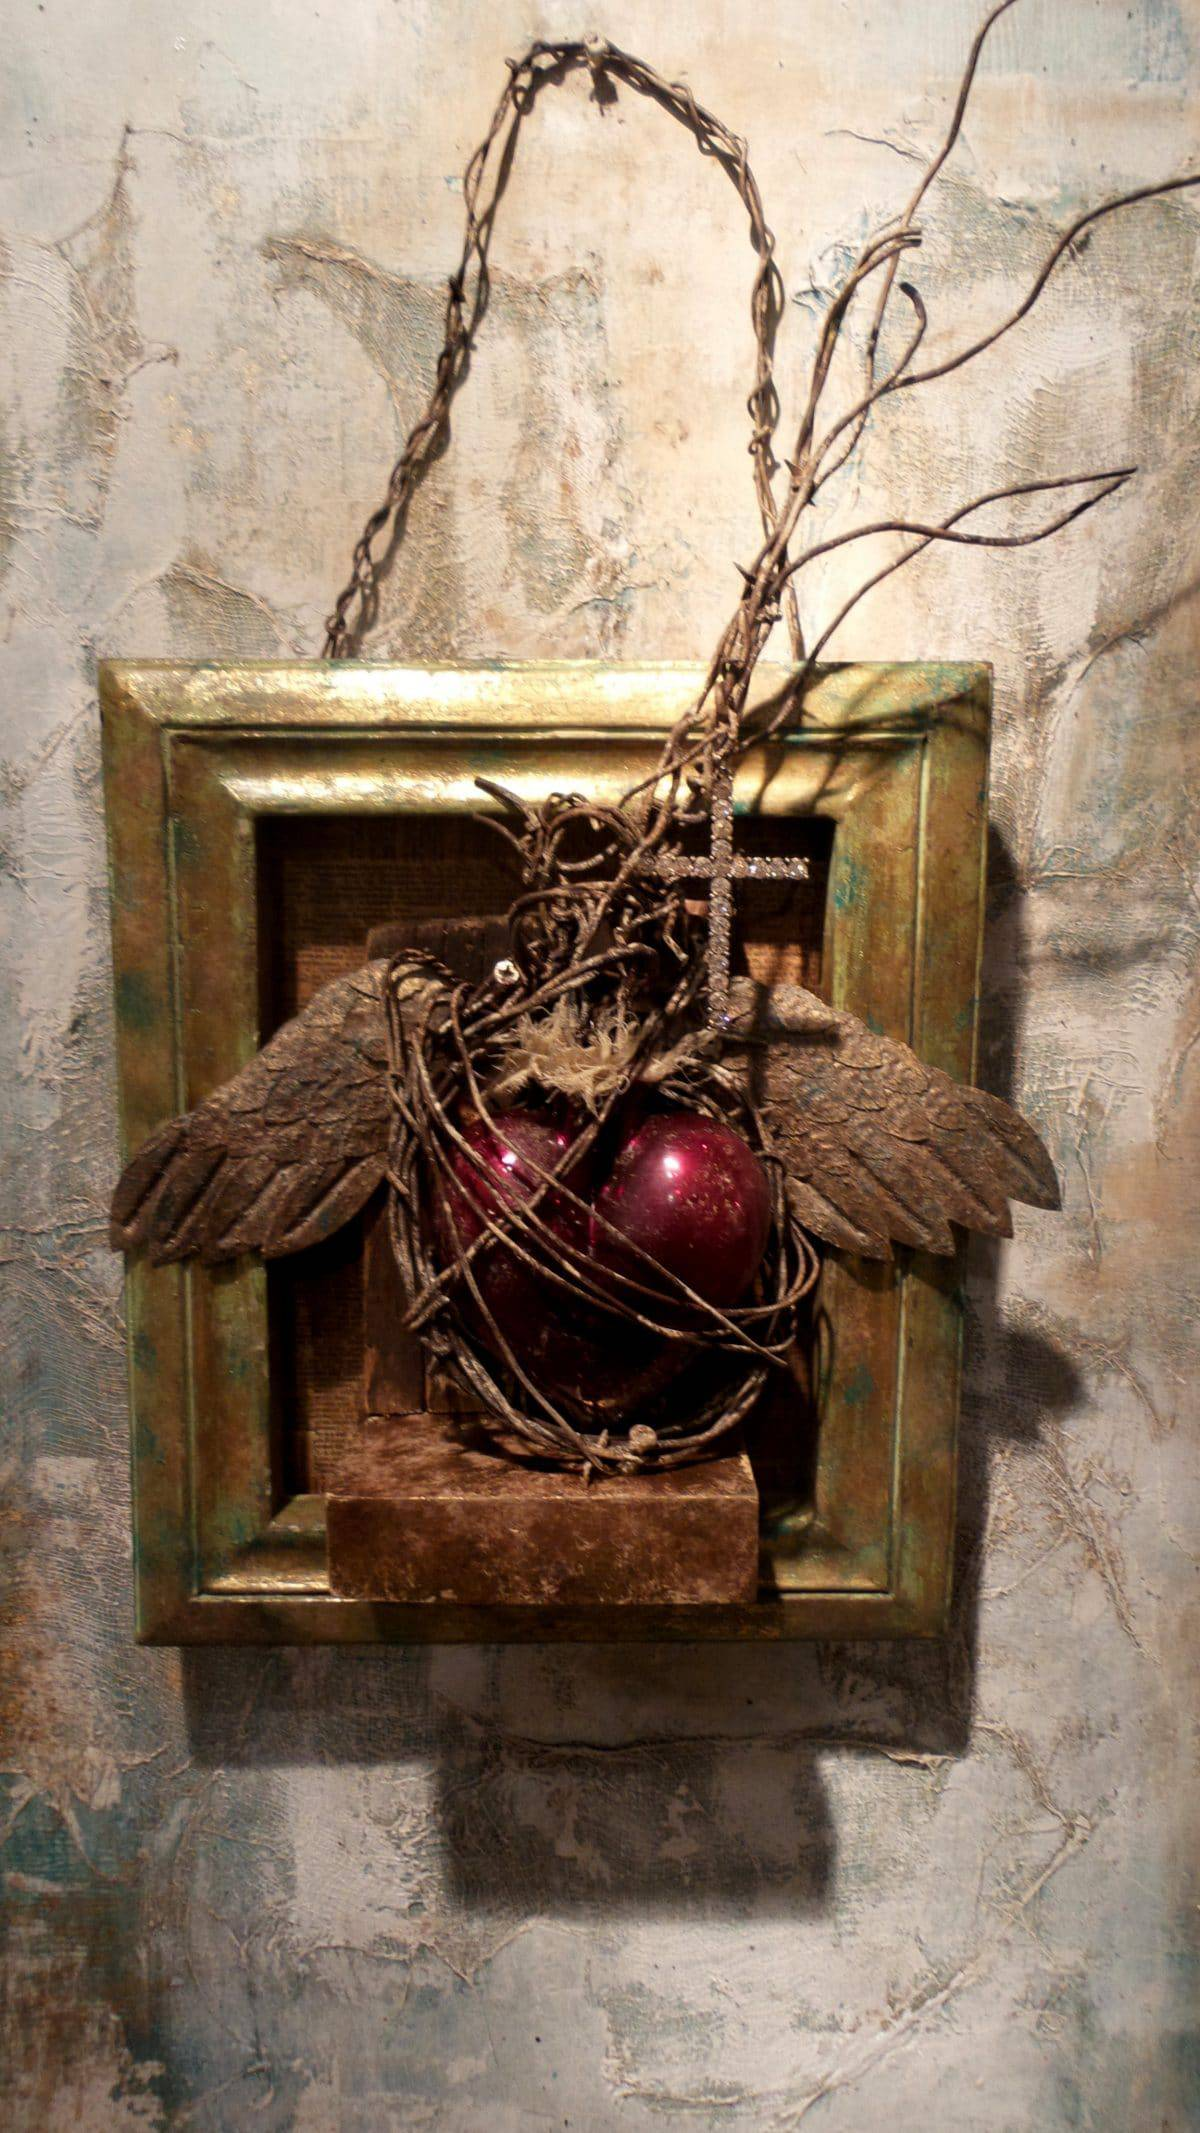 This mixed media assemblage is by Lazaro Iglesias who is being interviewed by Mary Ellen Merrigan